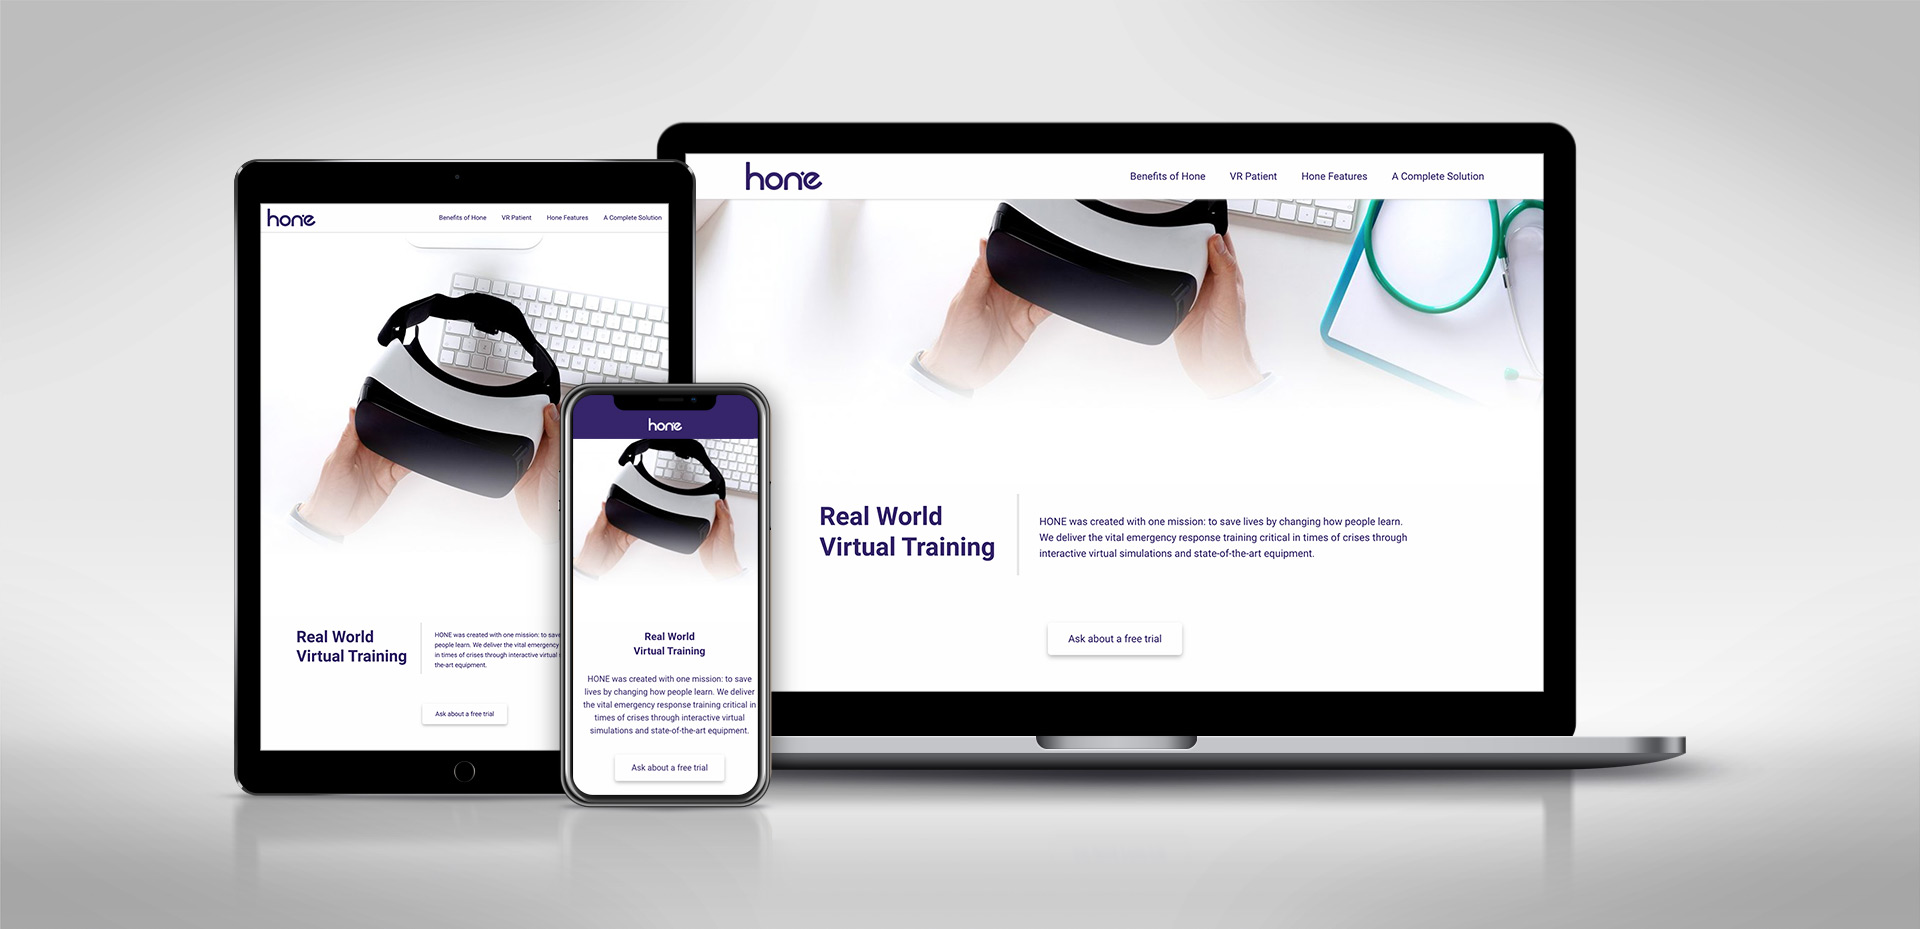 Hone – Website and Collateral